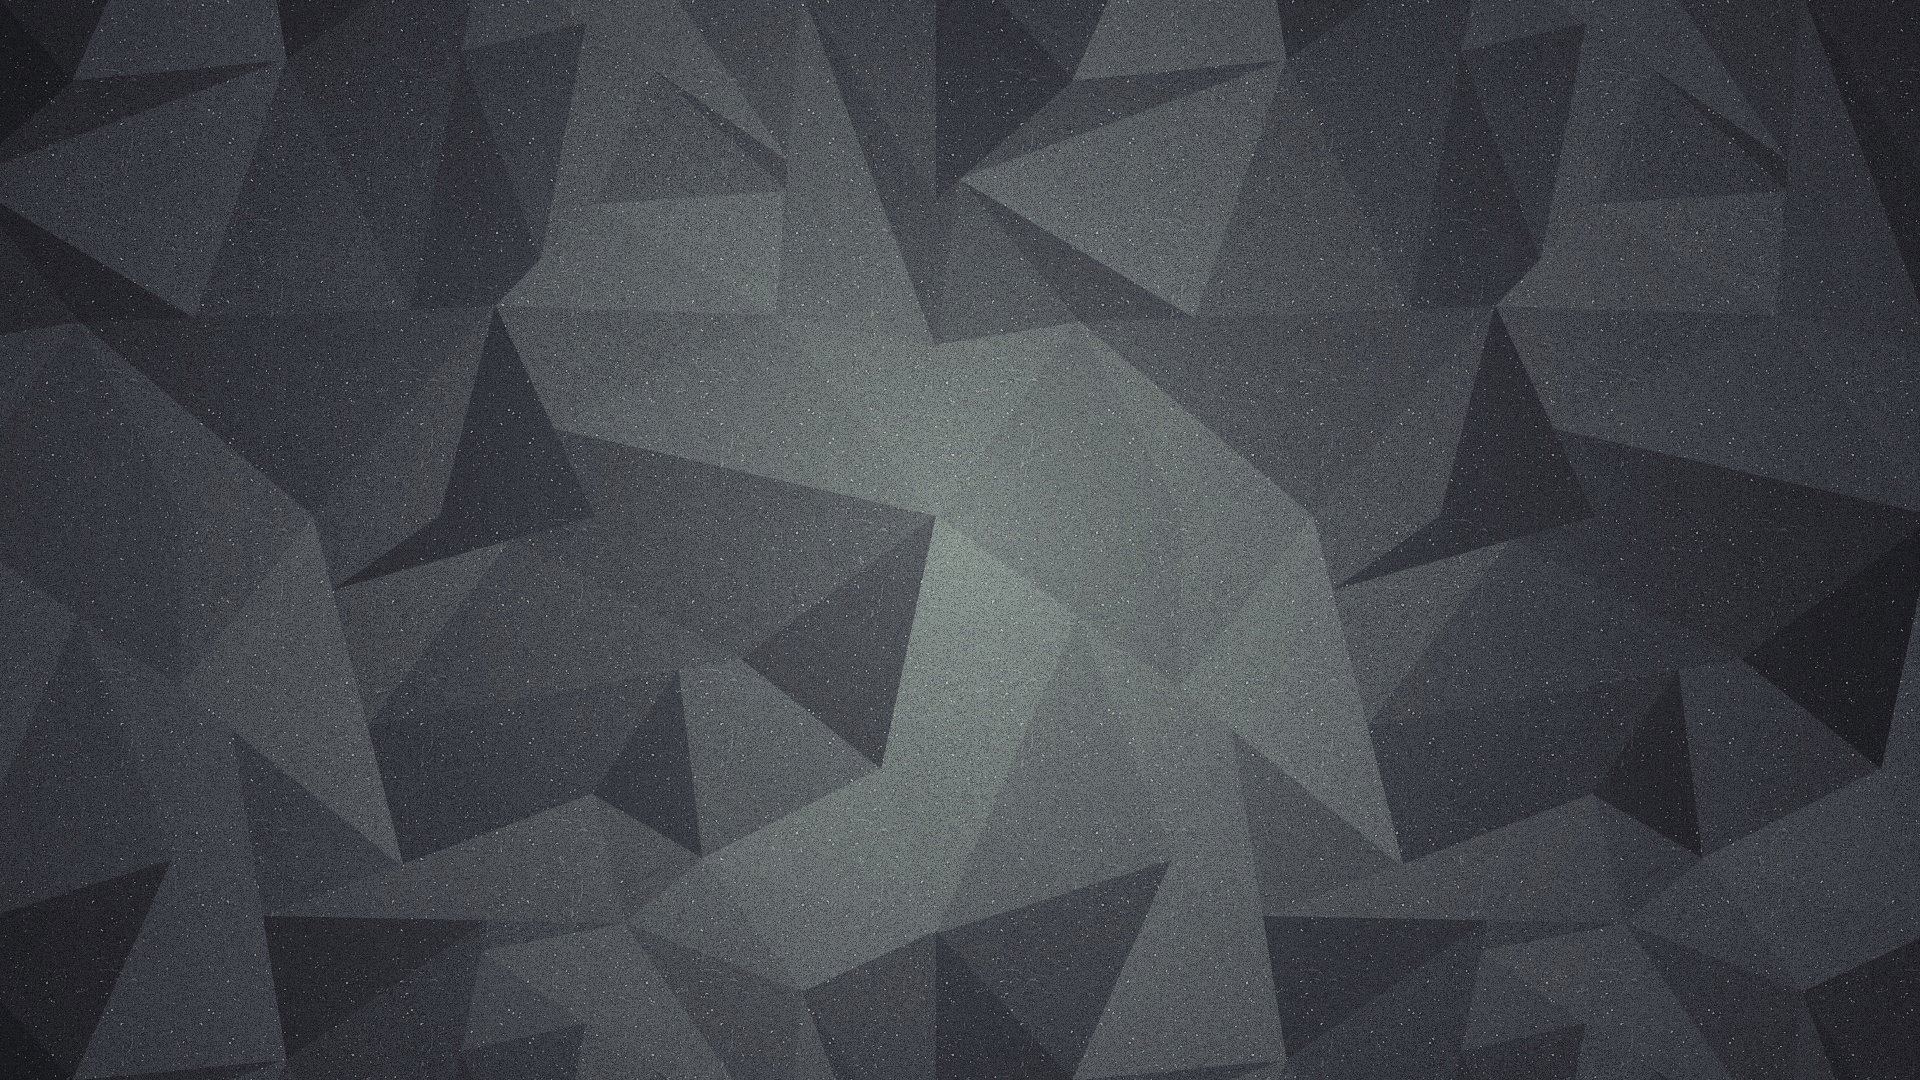 21 geometry wallpapers backgrounds images pictures for Black and grey wallpaper designs